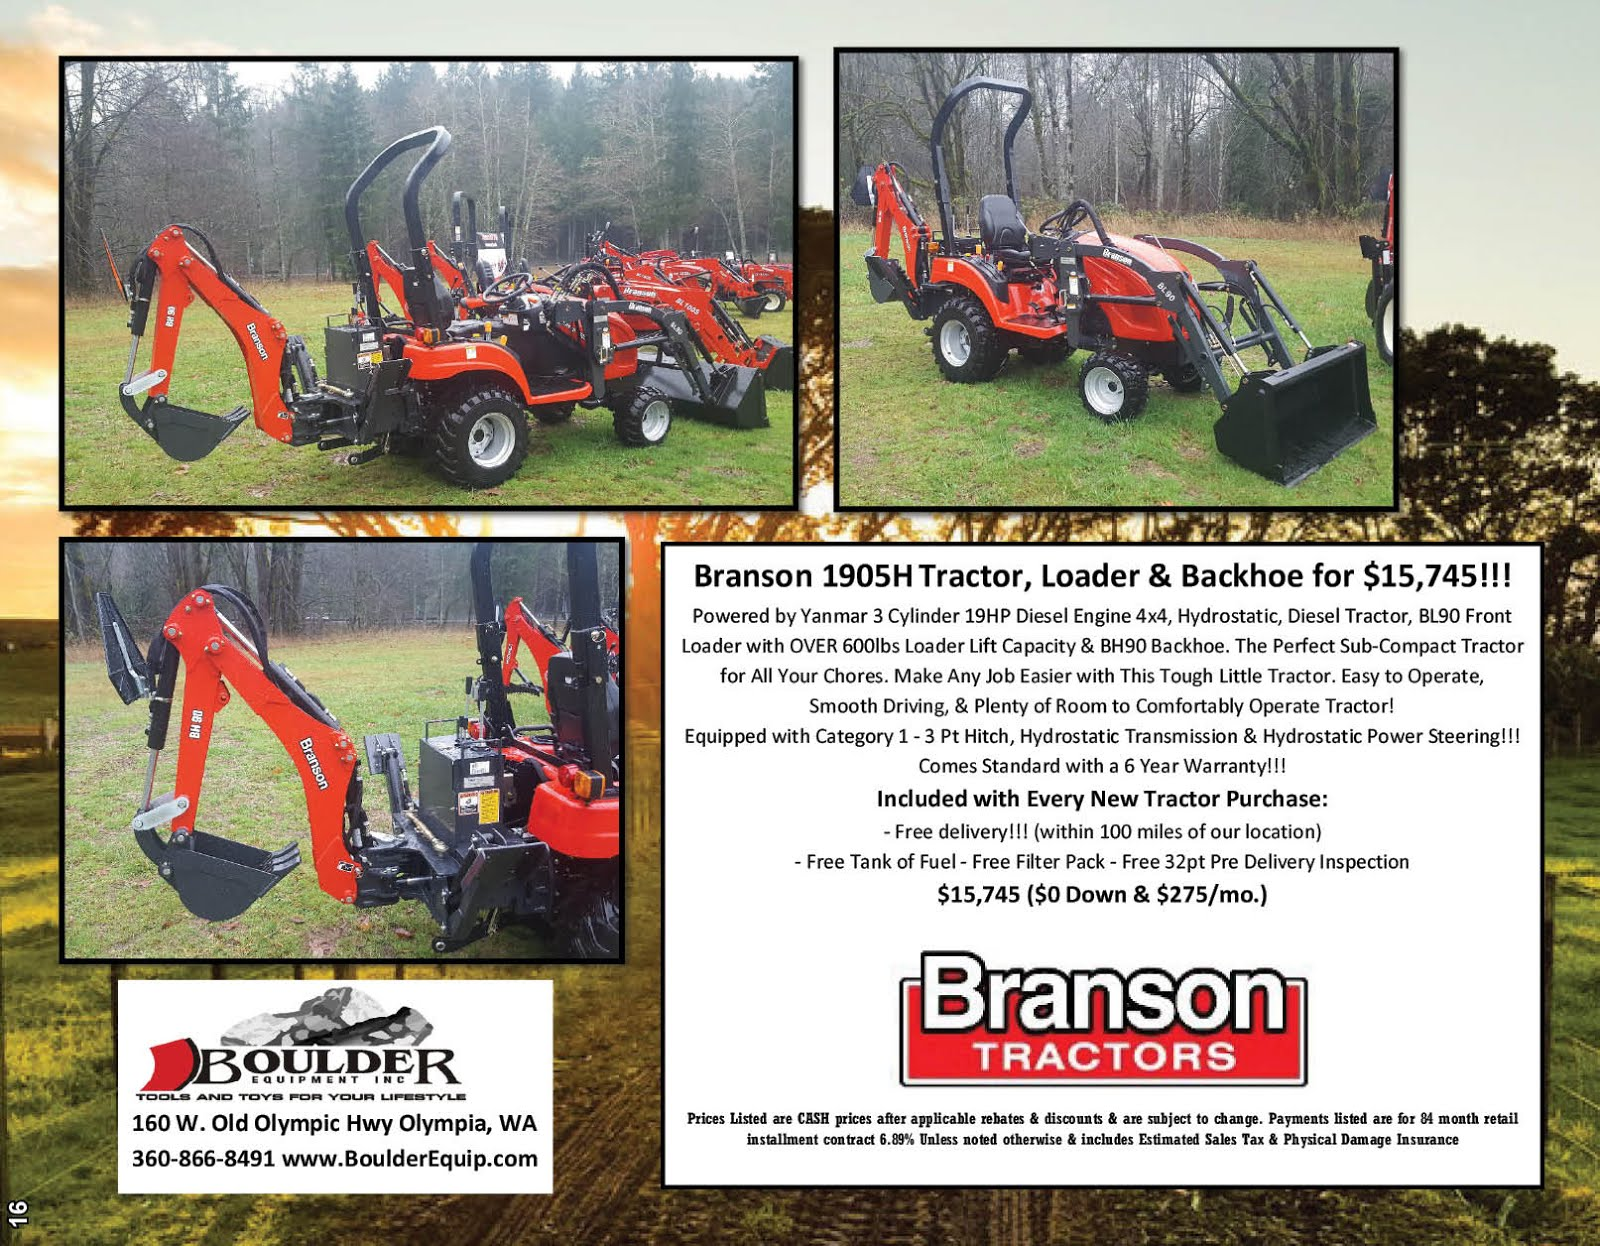 Boulder Equipment Has the Branson 1905H Diesel Tractor Pkg on Sale Now!!